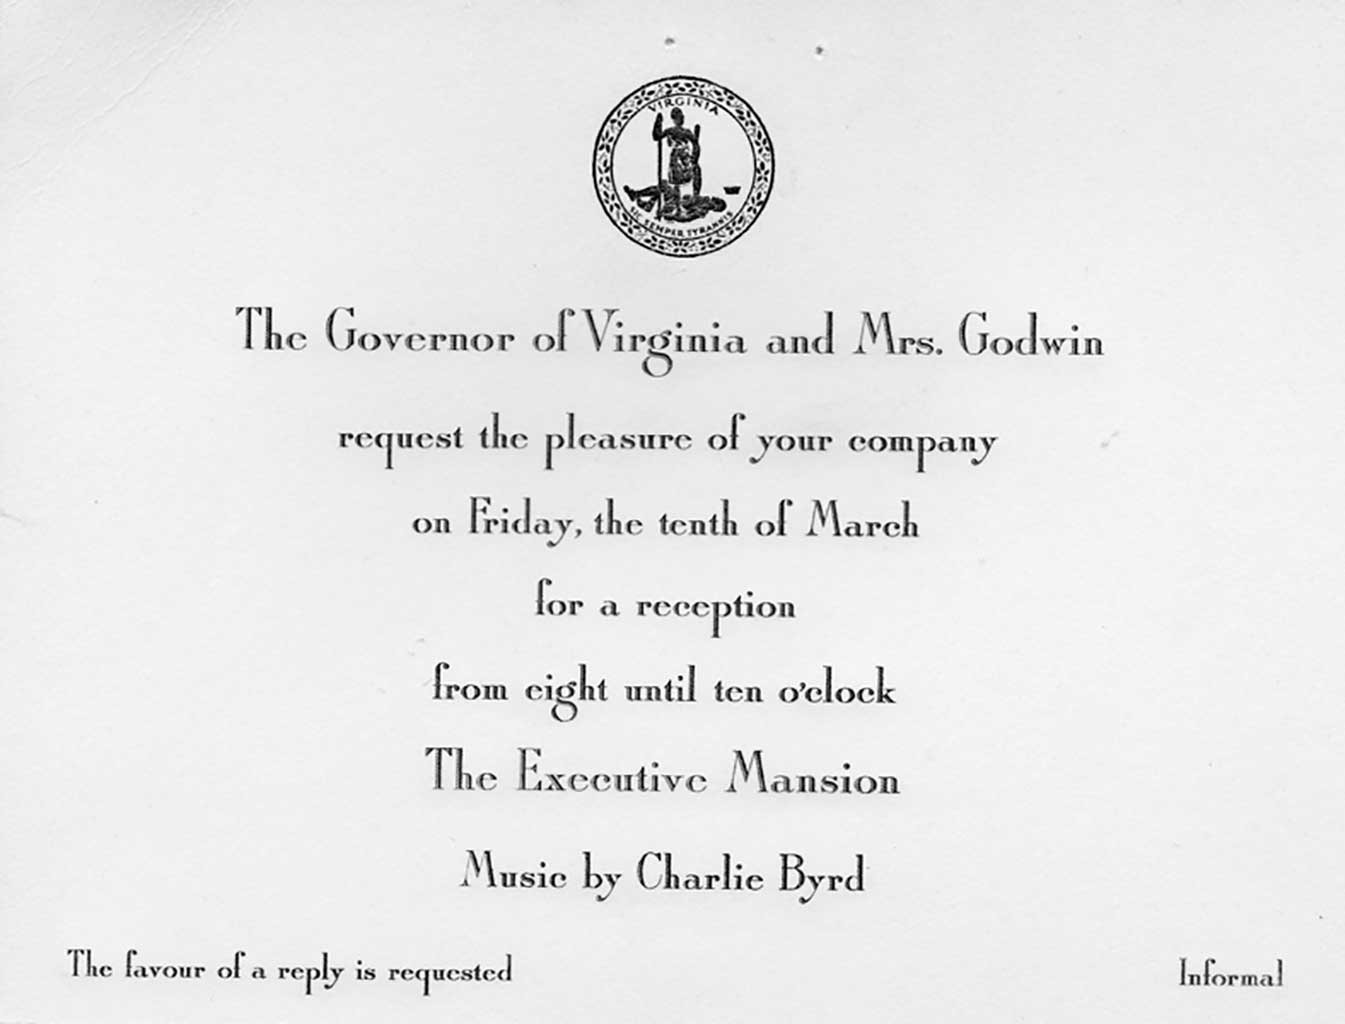 invitation-to-executive-mansion-for-charlie-byrd-img035